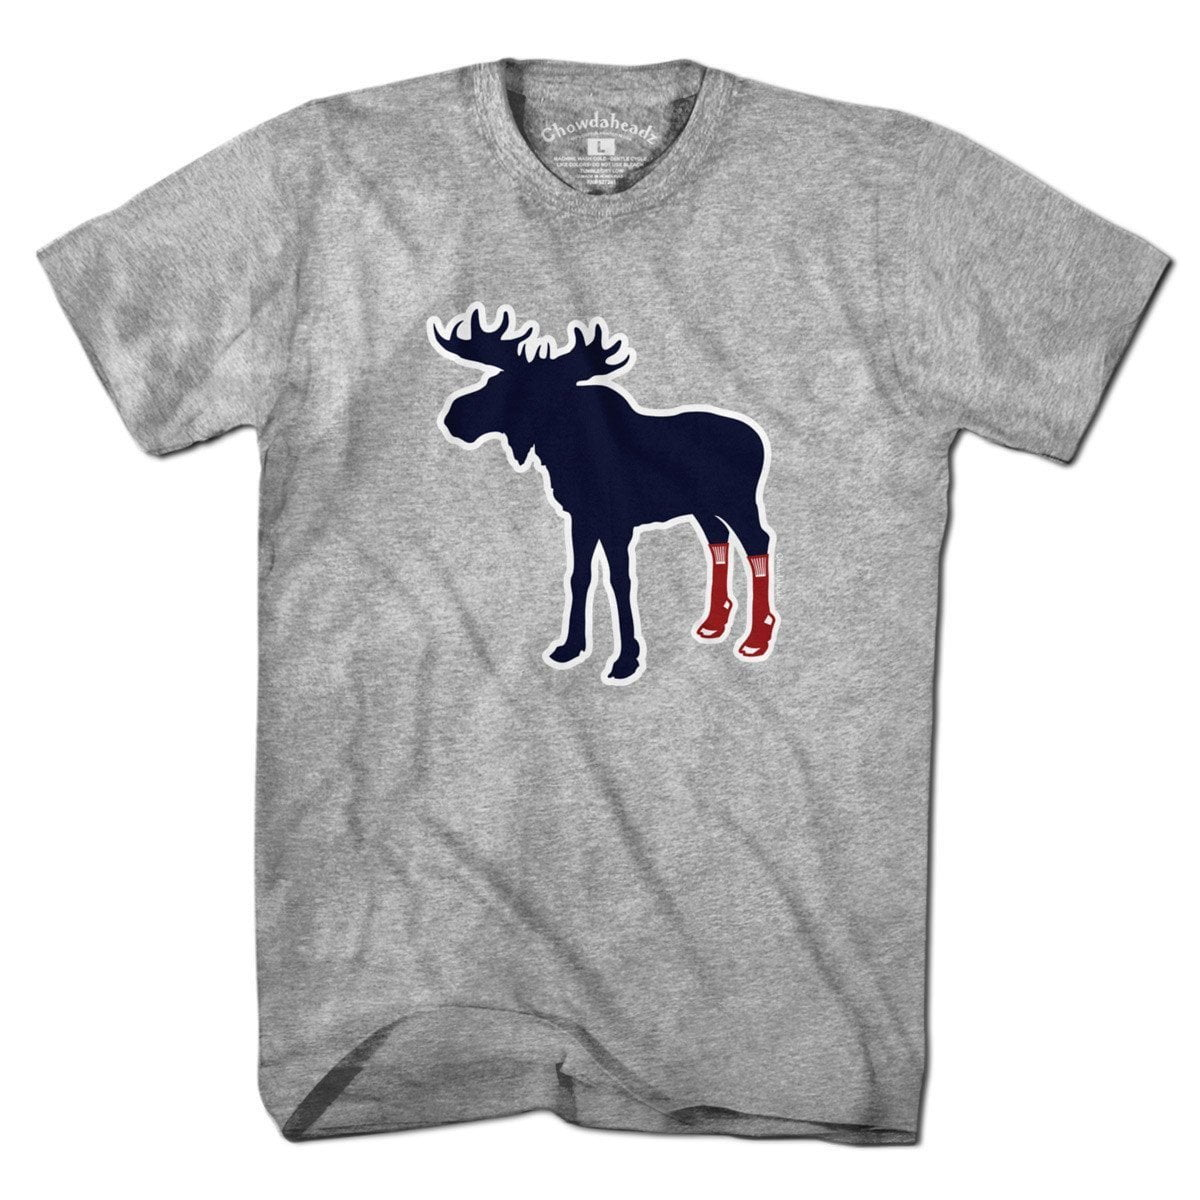 17bac357edac5 Socks On Moose T-Shirt - Chowdaheadz